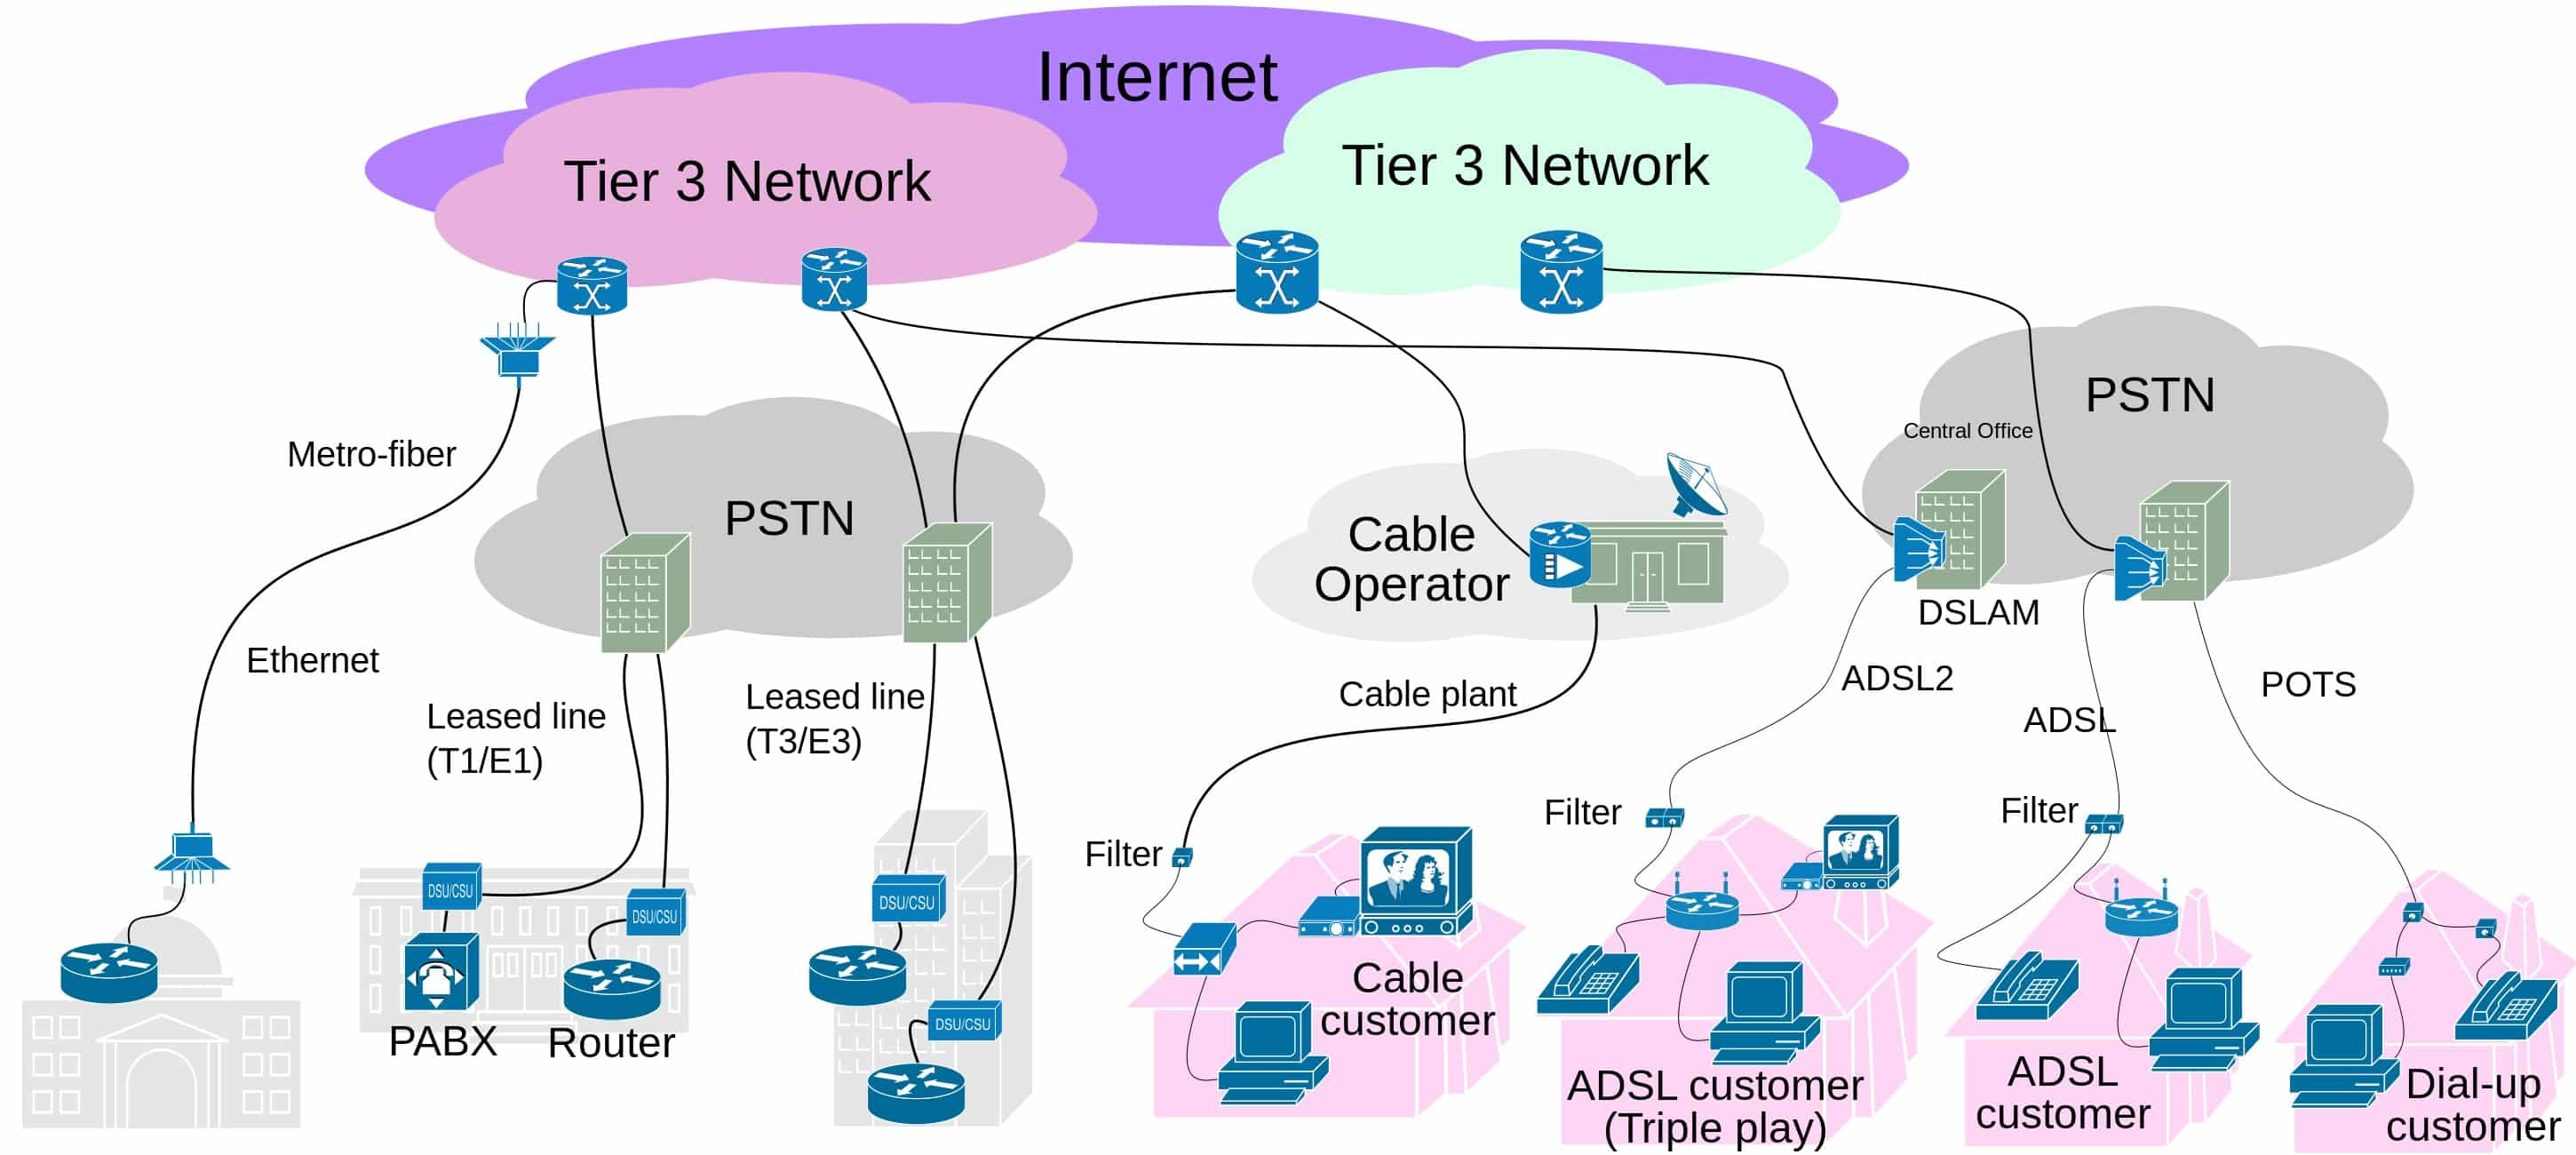 3 tier internet architecture diagram 93 chevy 1500 alternator wiring fast faster fastest comparing isp speeds in the u s